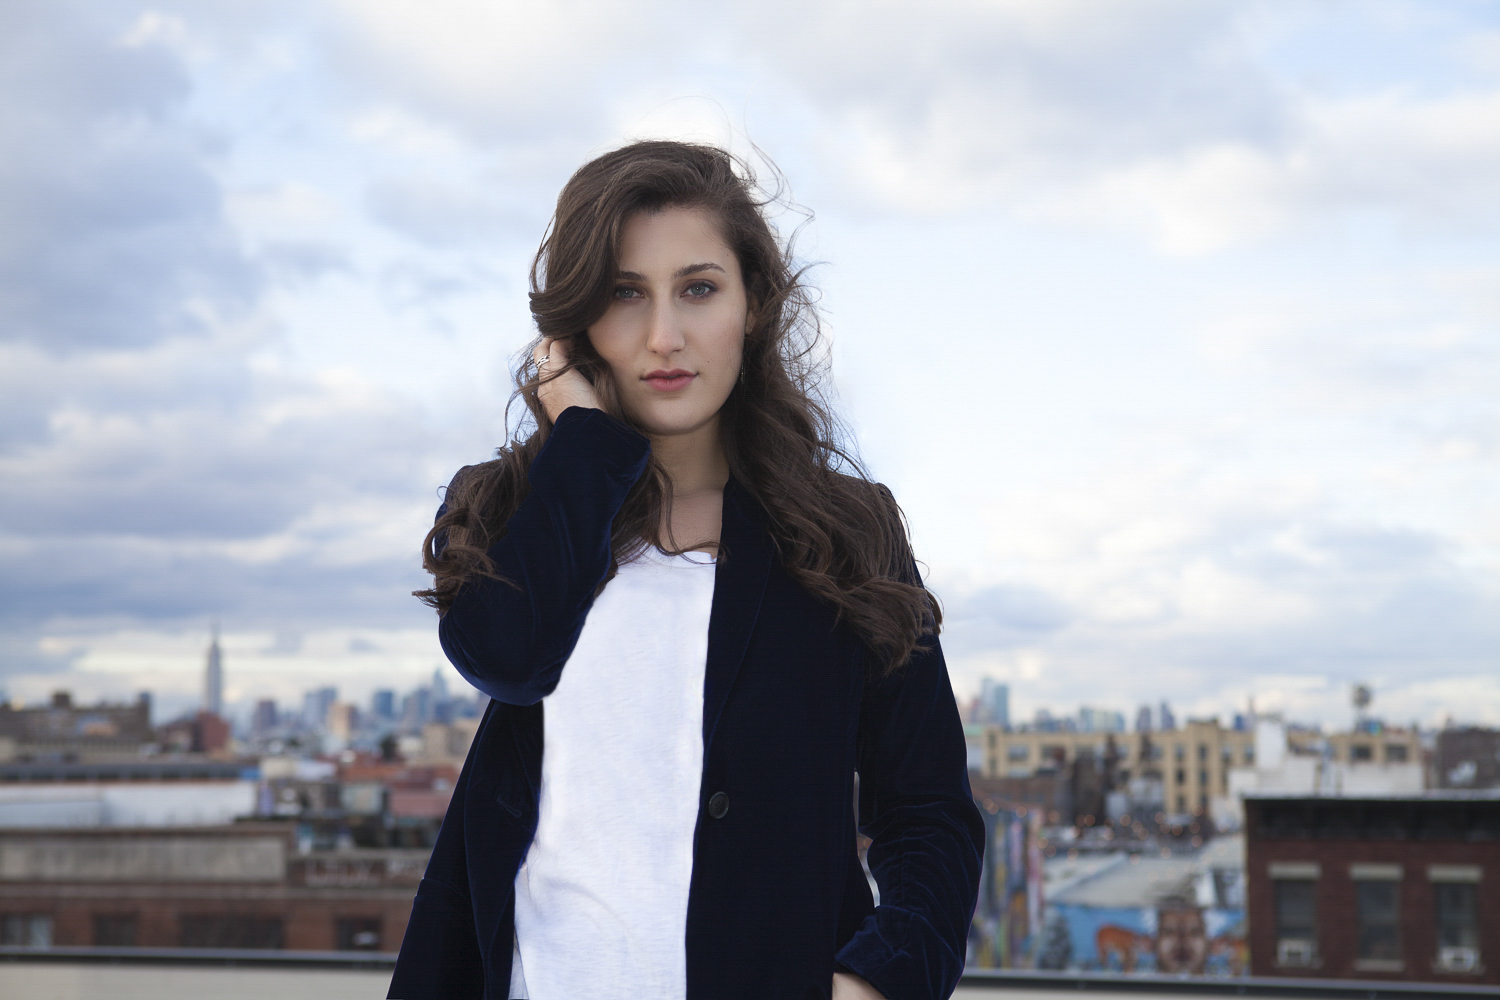 Sarah Solovay: From Ivy League to pop queen